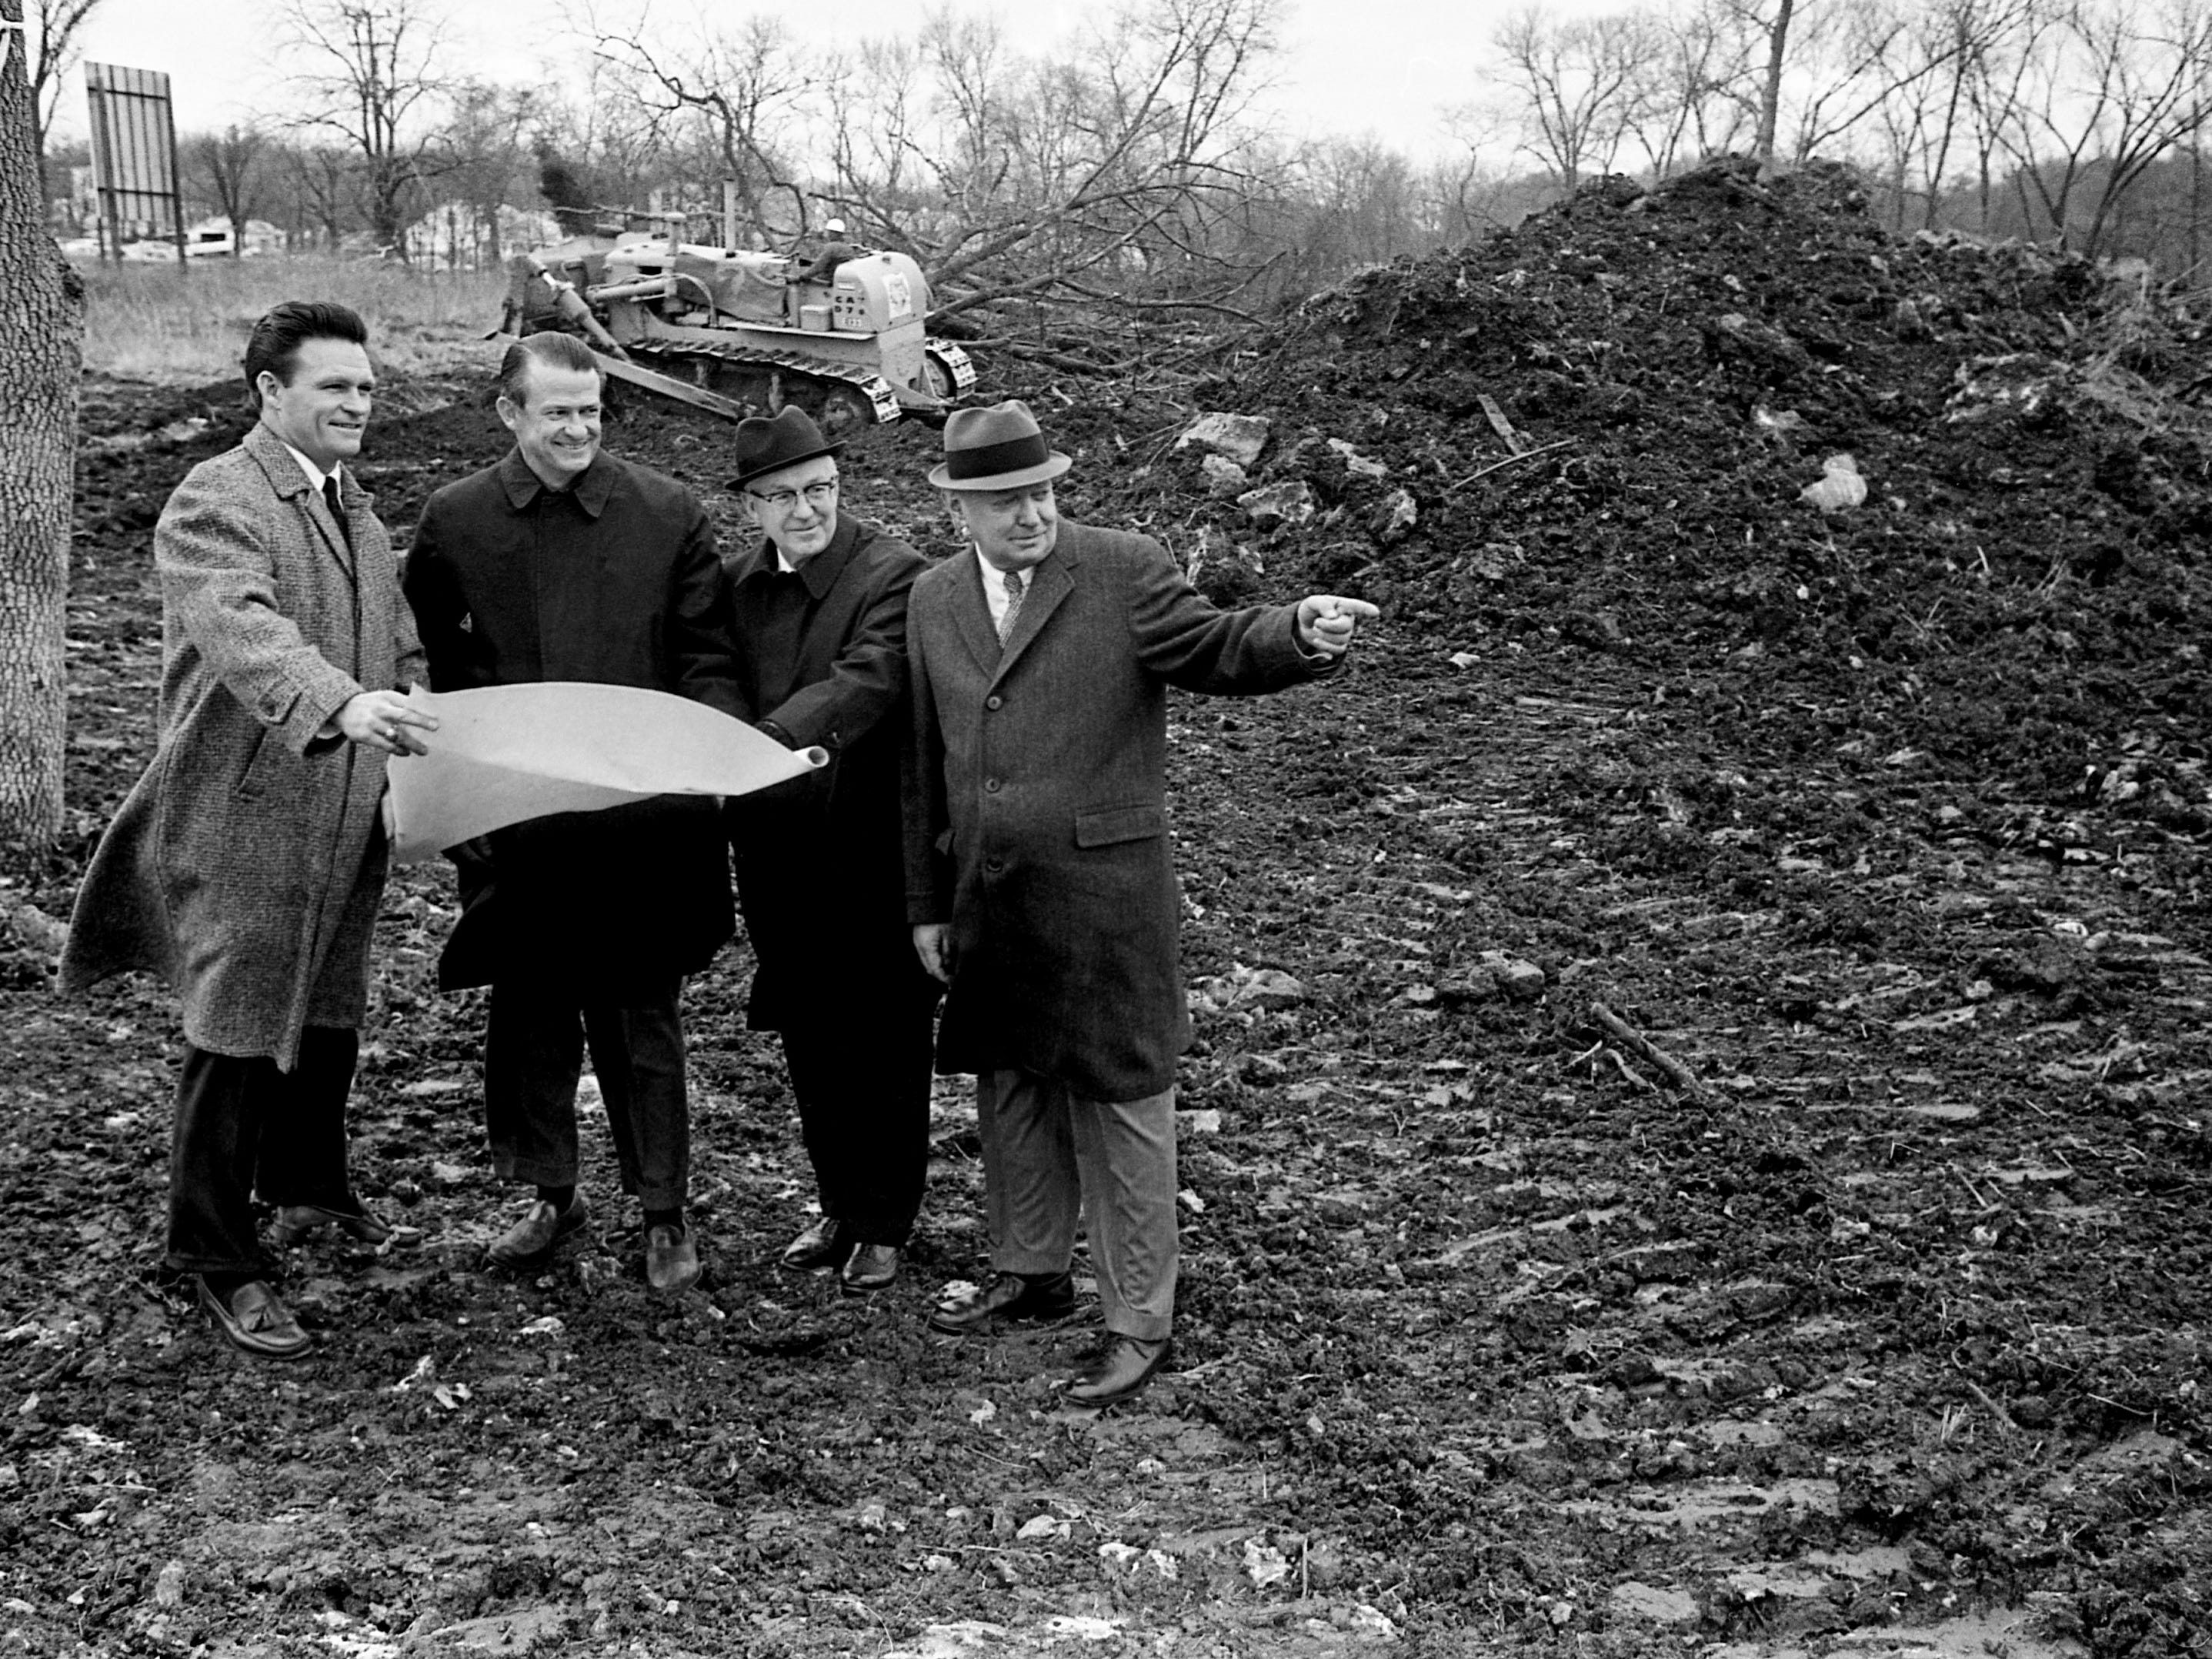 Members of Nashville YMCA's capital funds campaign look over the Green Hills site being cleared for recreational activities Dec. 23, 1968, and eventually for a $1.4 million development. They are Jack Petterson, left, Warren Taylor, the Rev. Frank Drowota and R.M. Crichton.